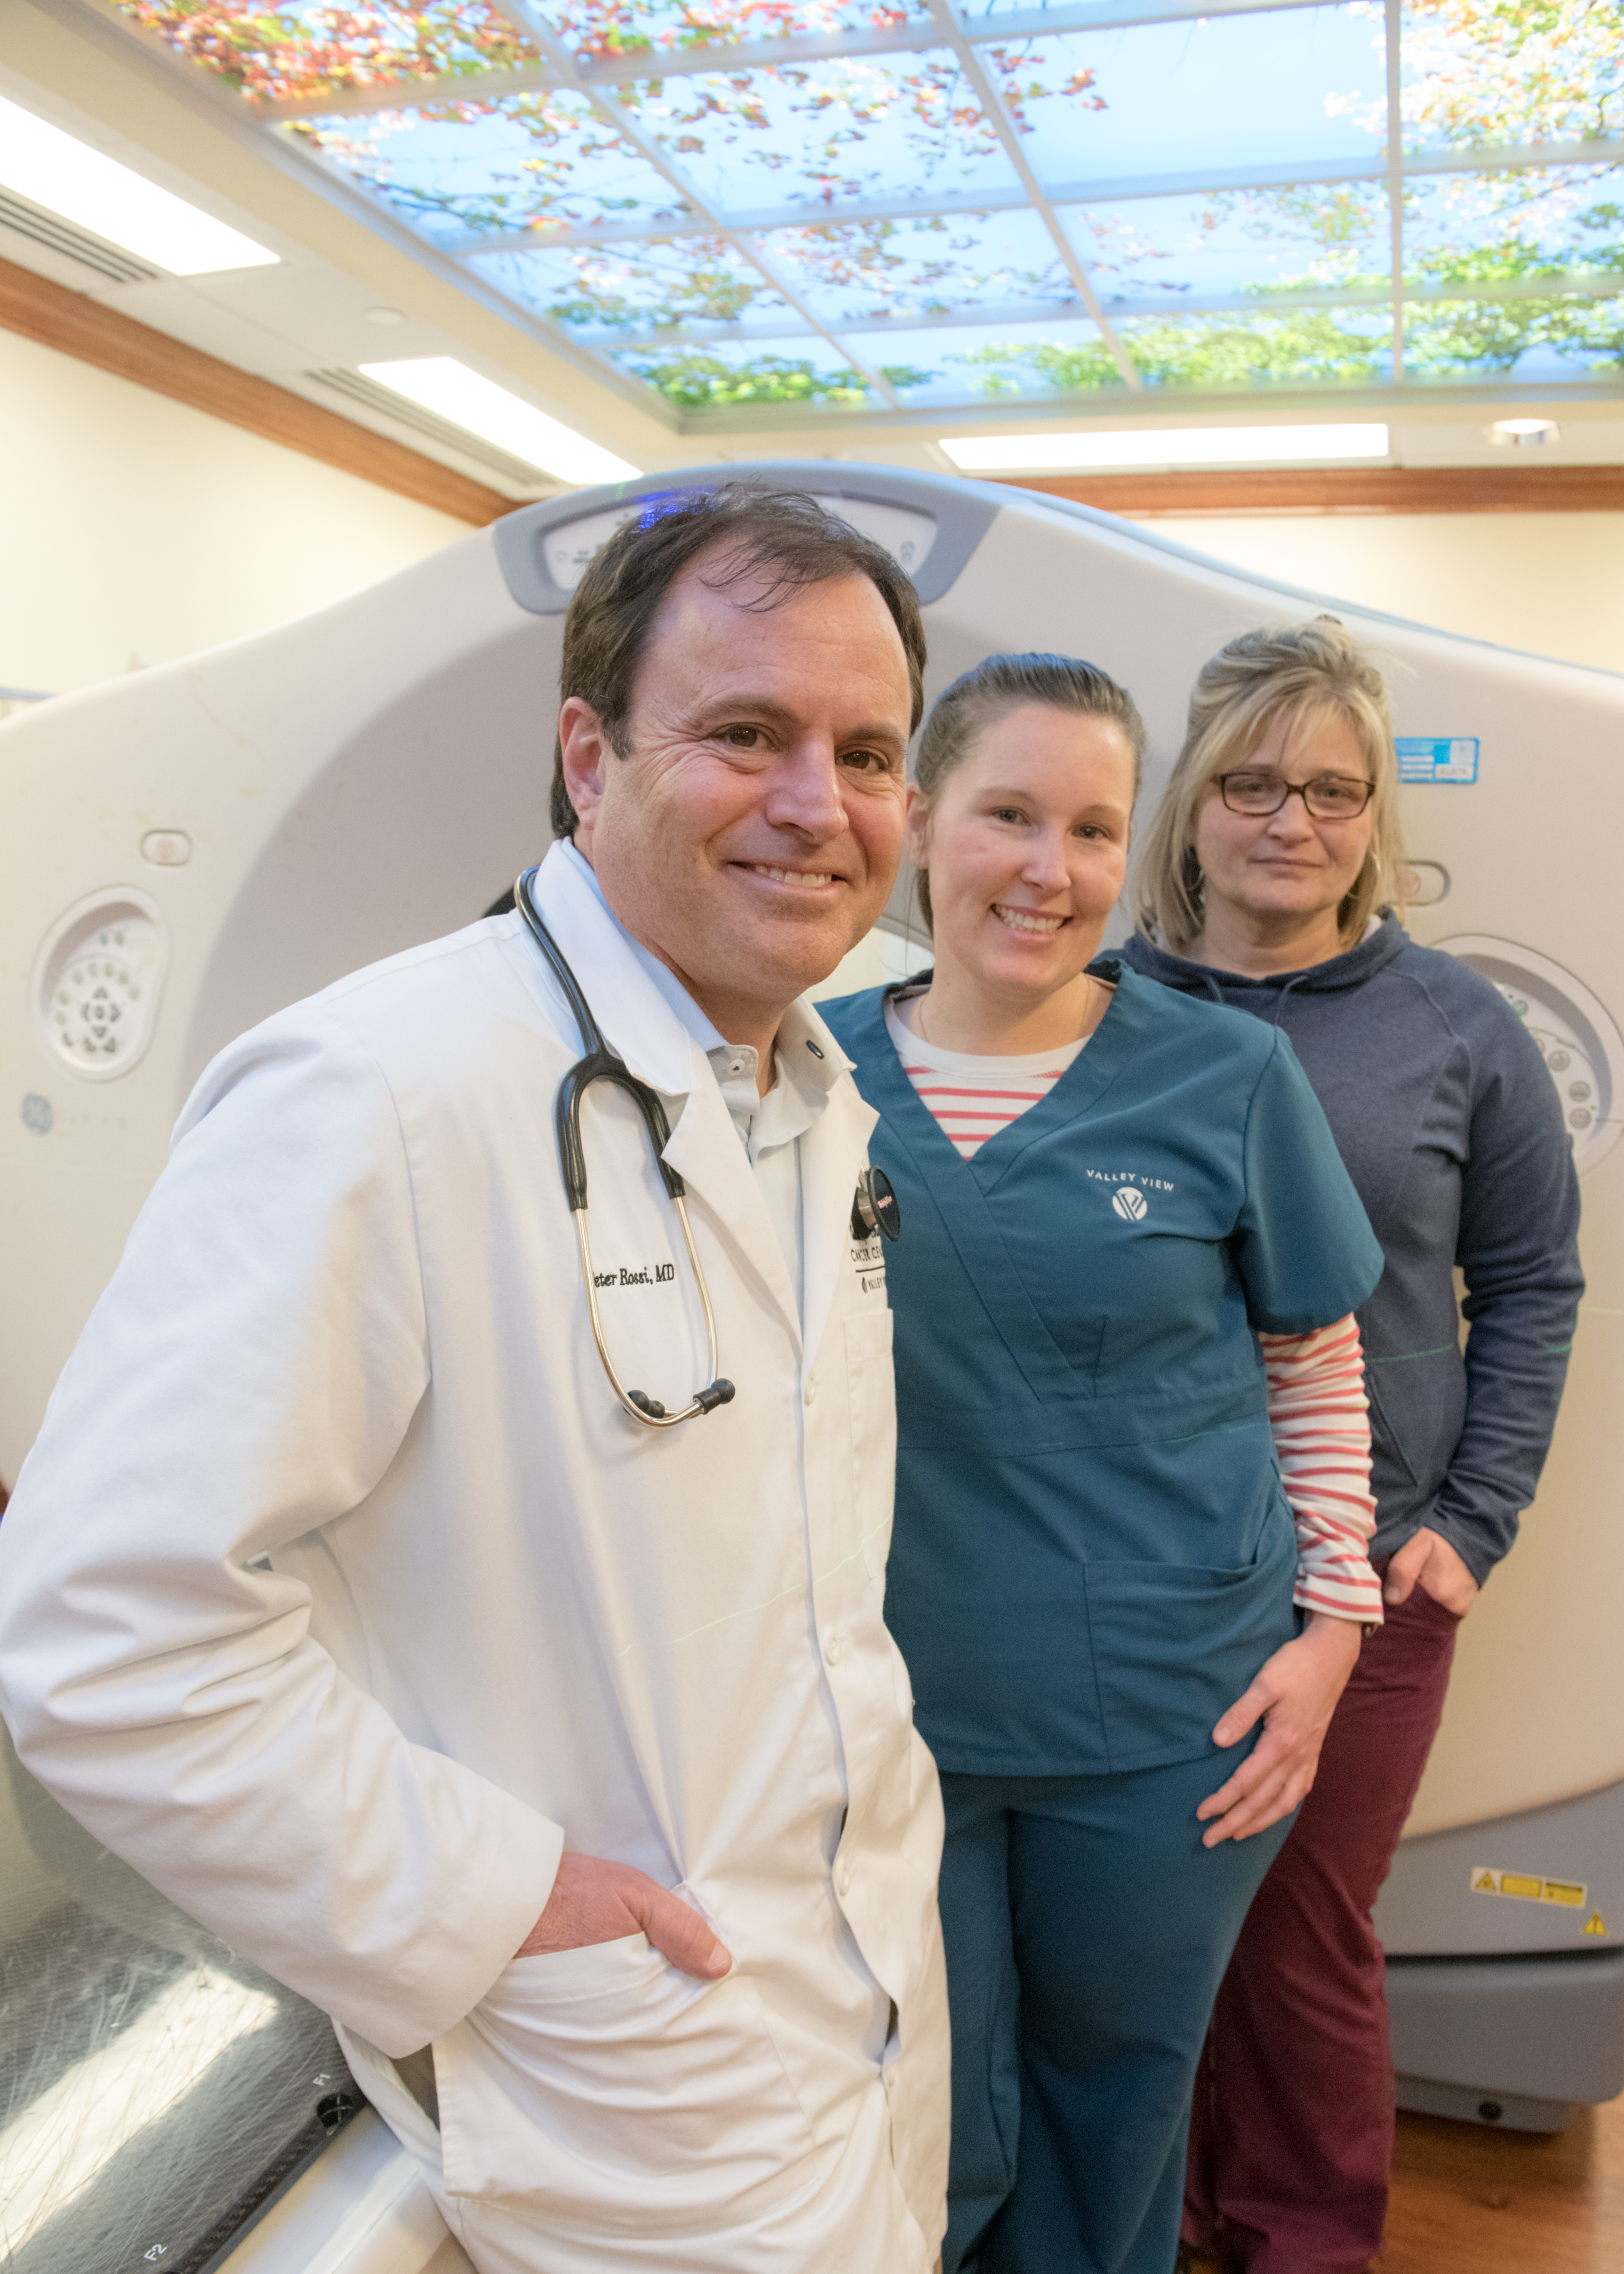 Valley View Hospital's new Orion a boon to prostate cancer treatment